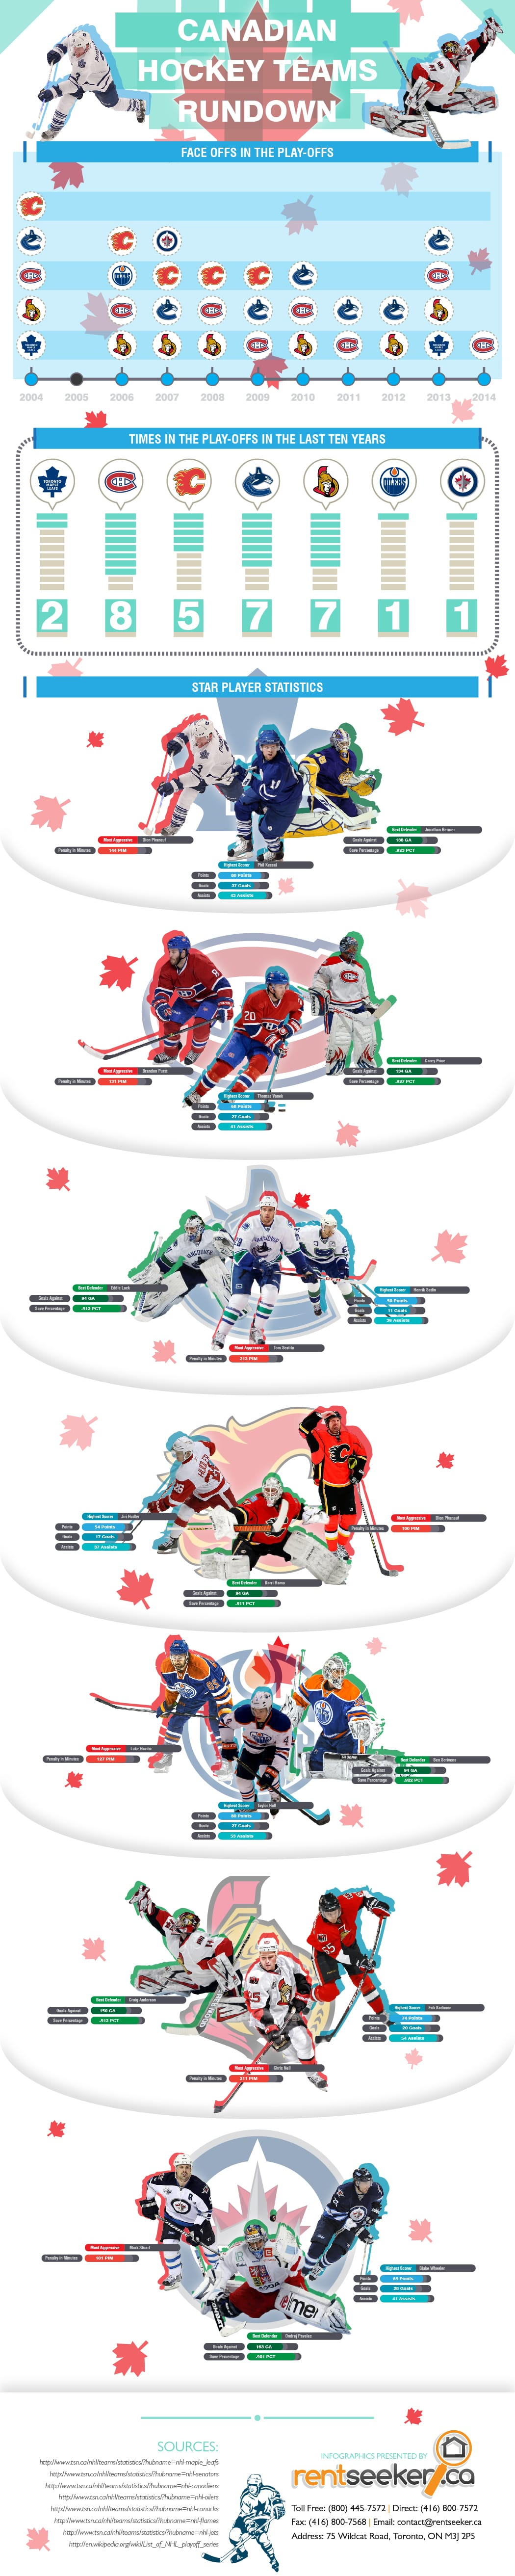 Canadian Hockey Team Stats INFOGRAPHIC by RentSeeker.ca